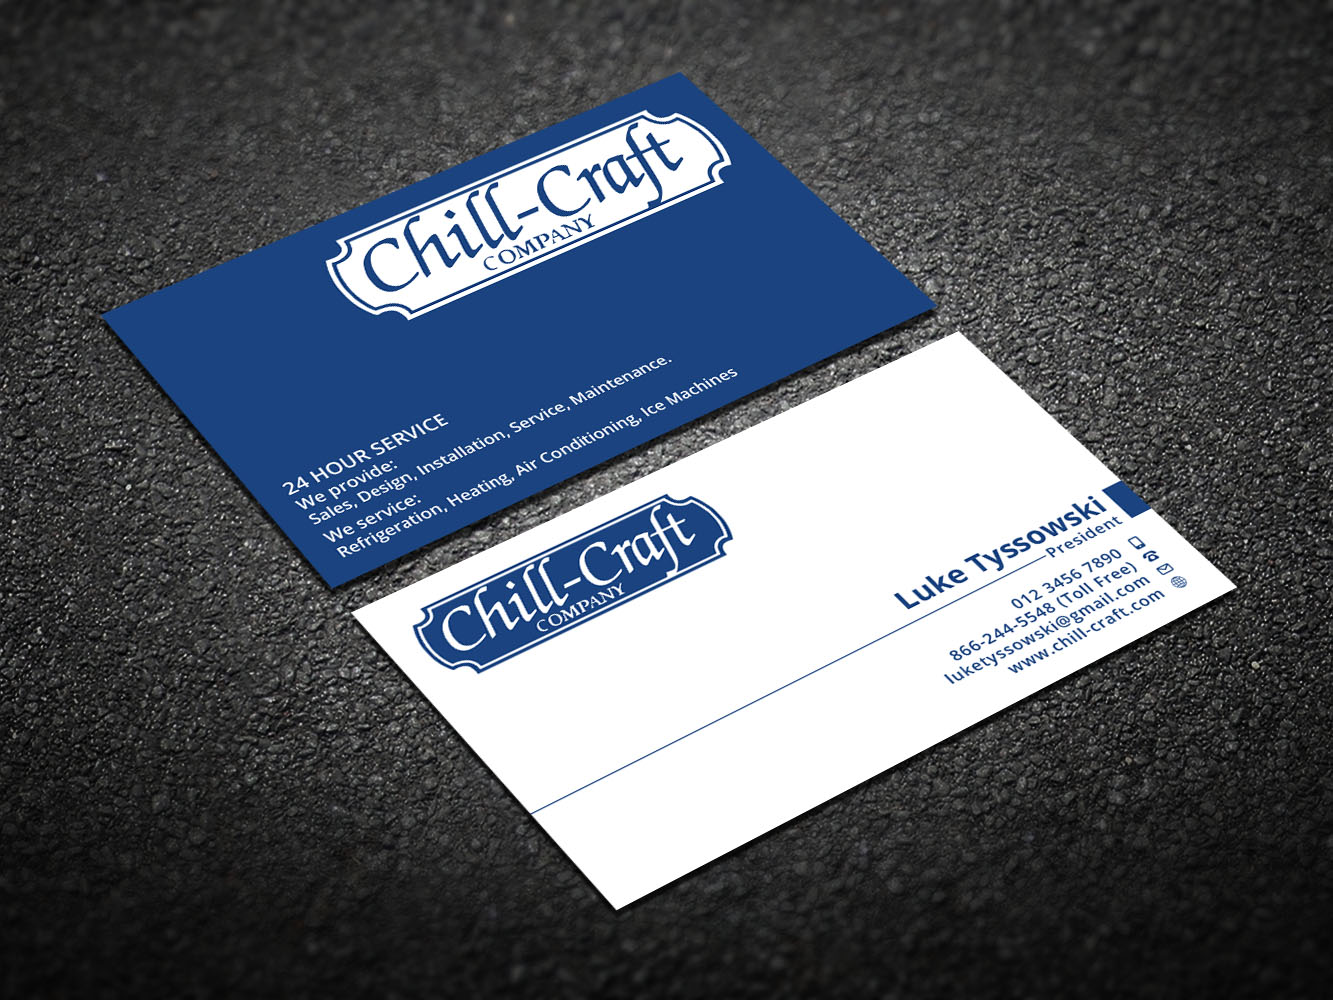 Modern professional hvac business card design for chill craft business card design by design xeneration for chill craft company design 9934837 wajeb Gallery